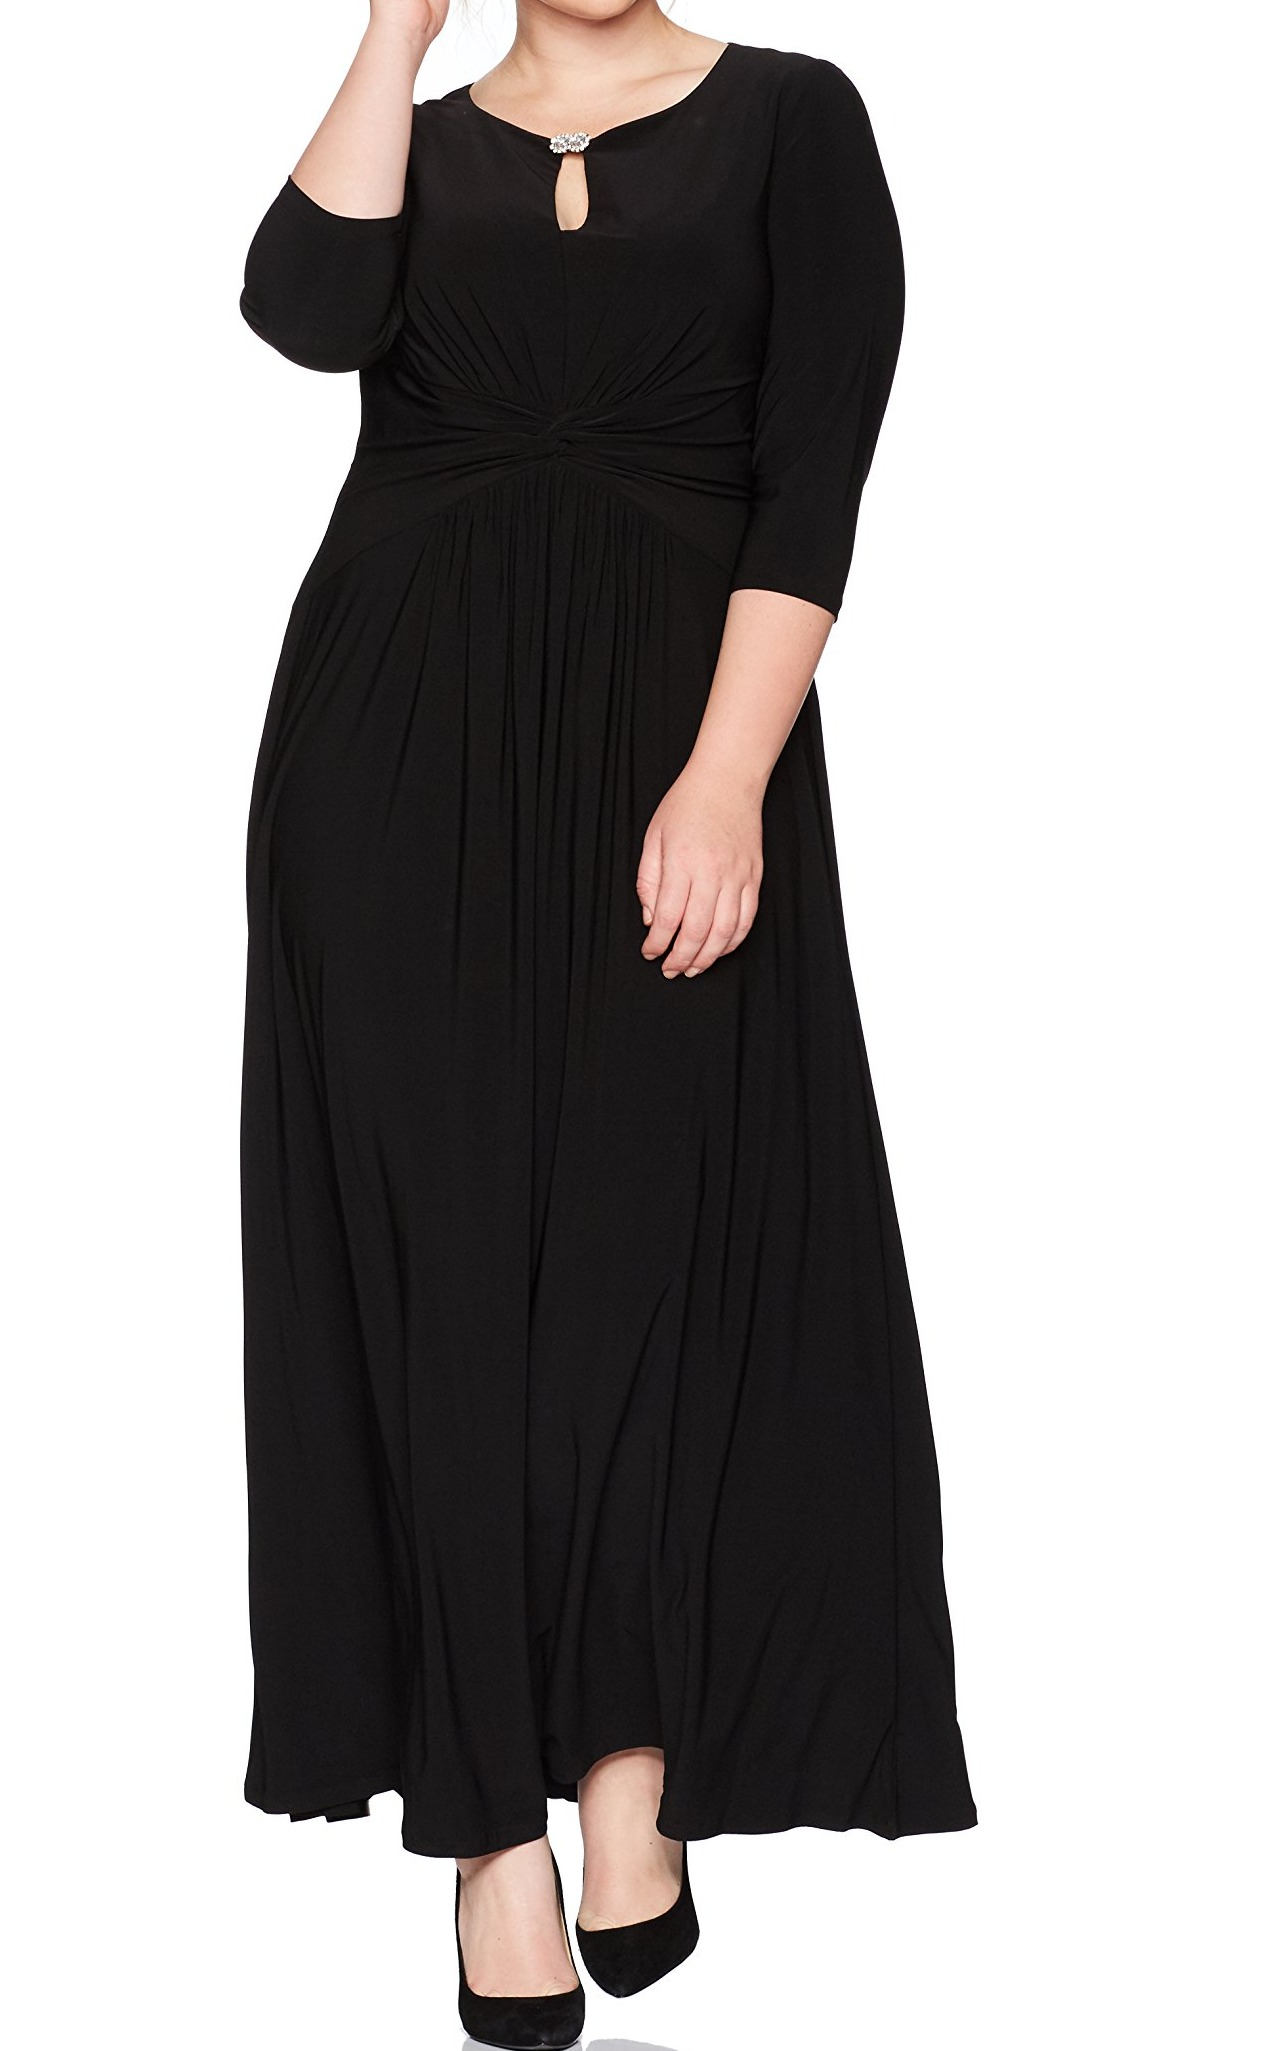 976ef88fd0864 Alex Evenings NEW Black Women s Size 20W Plus Ruched Embellished ...